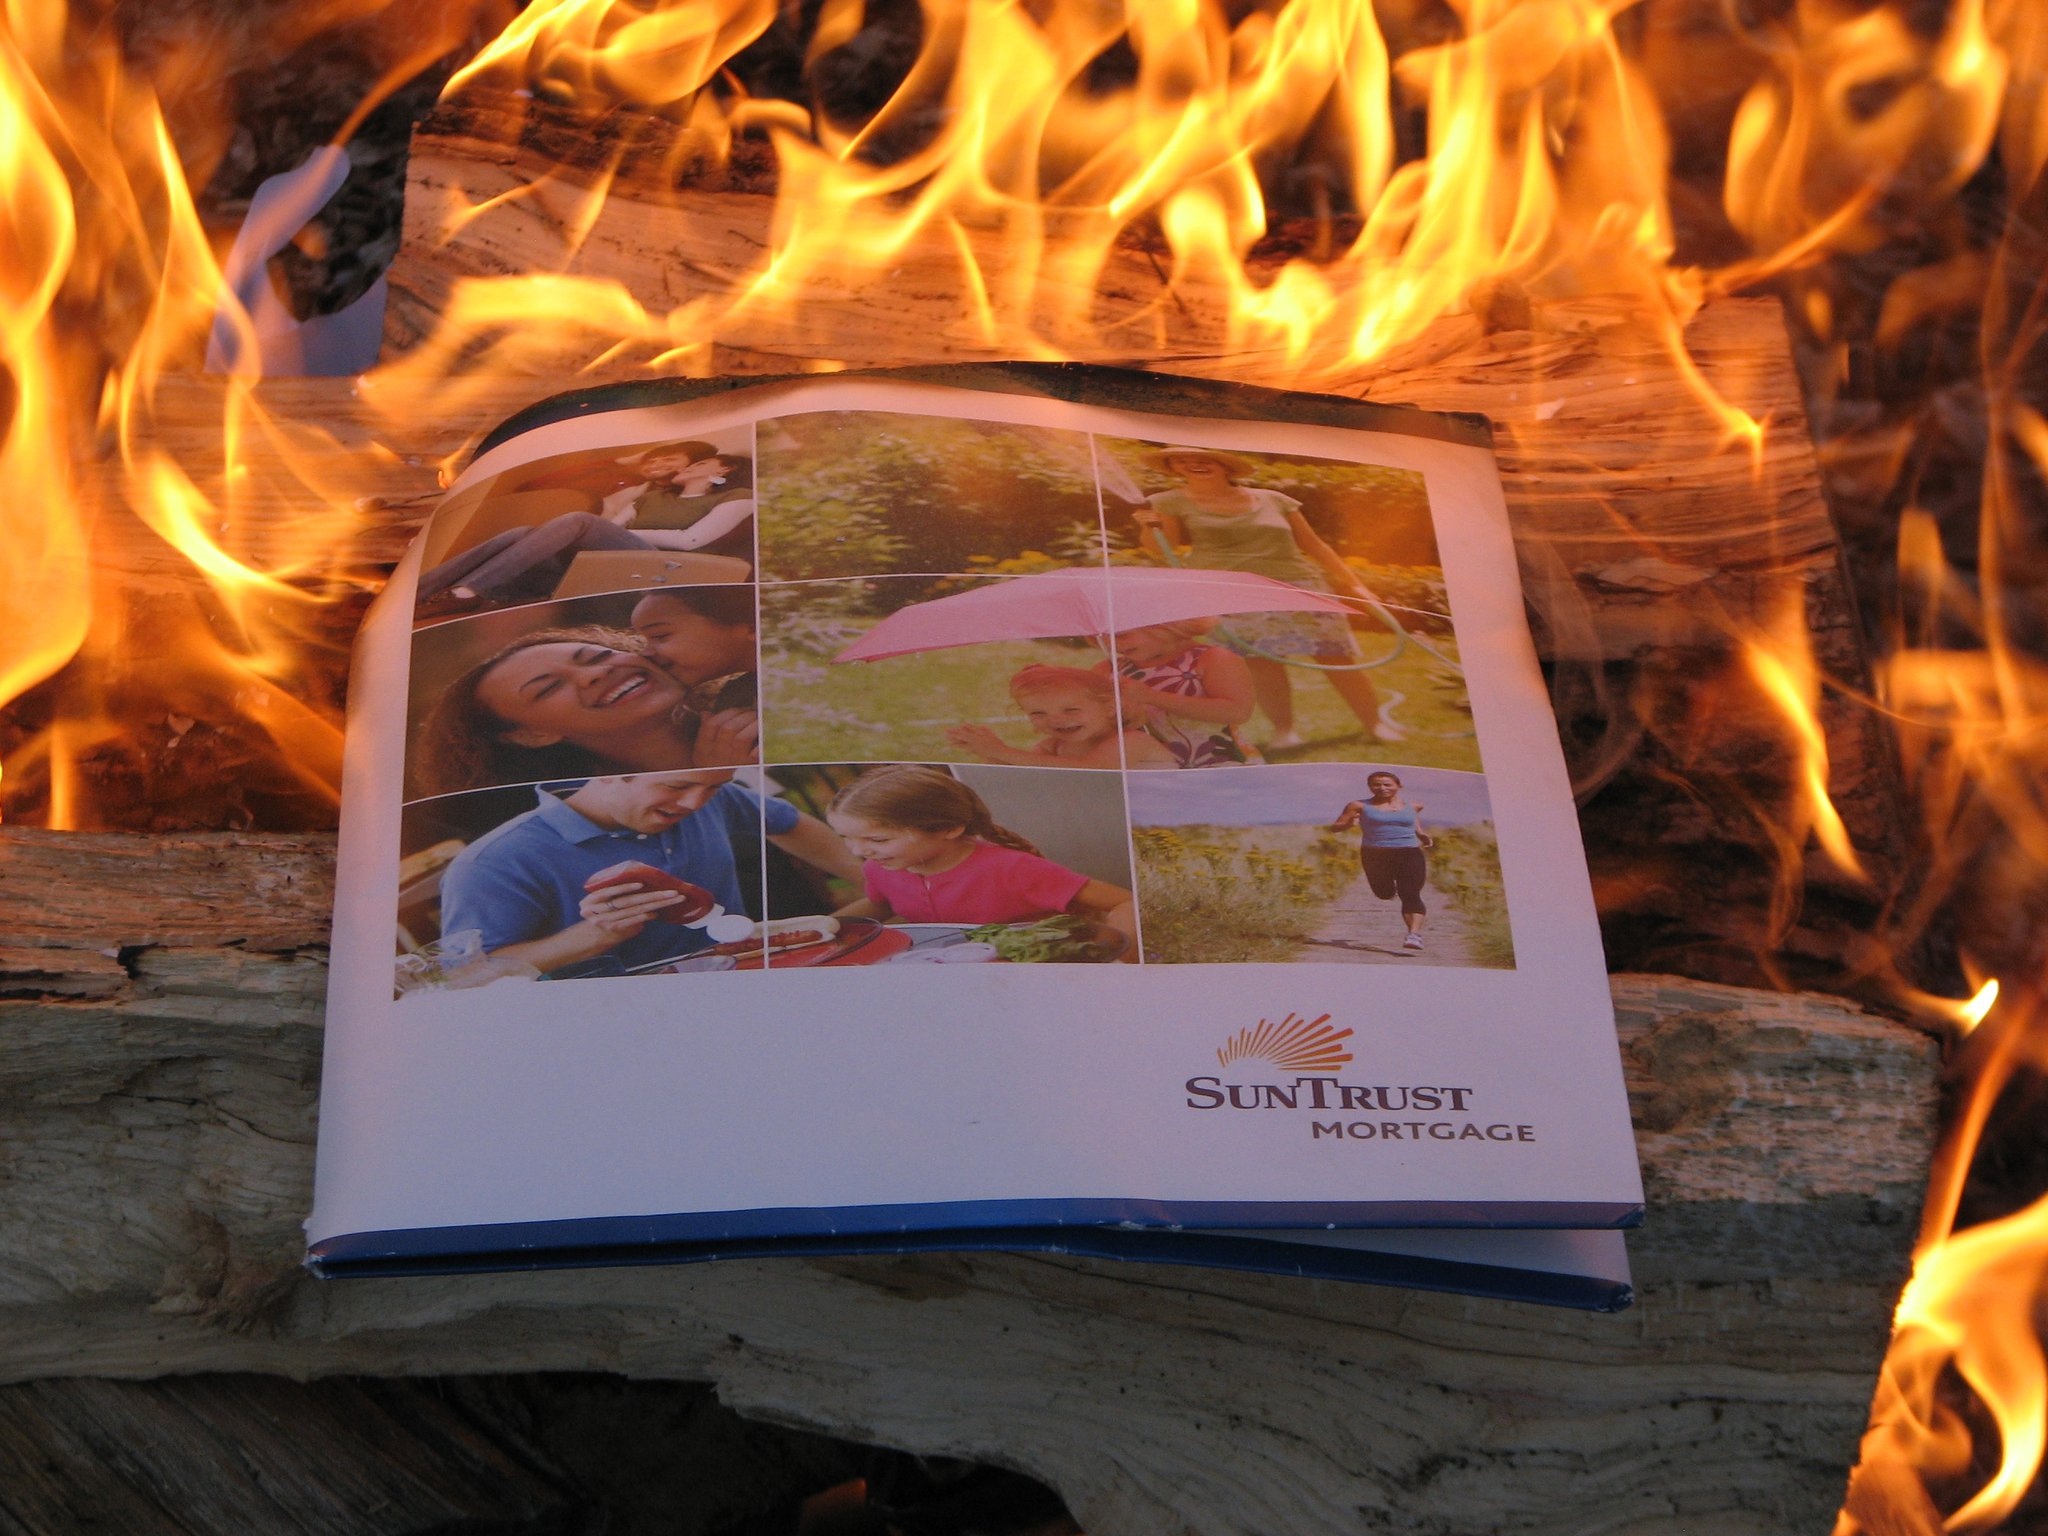 Mortgage-burning party, Spring 2011.  We roasted s'mores over the (non-essential to keep) documents.